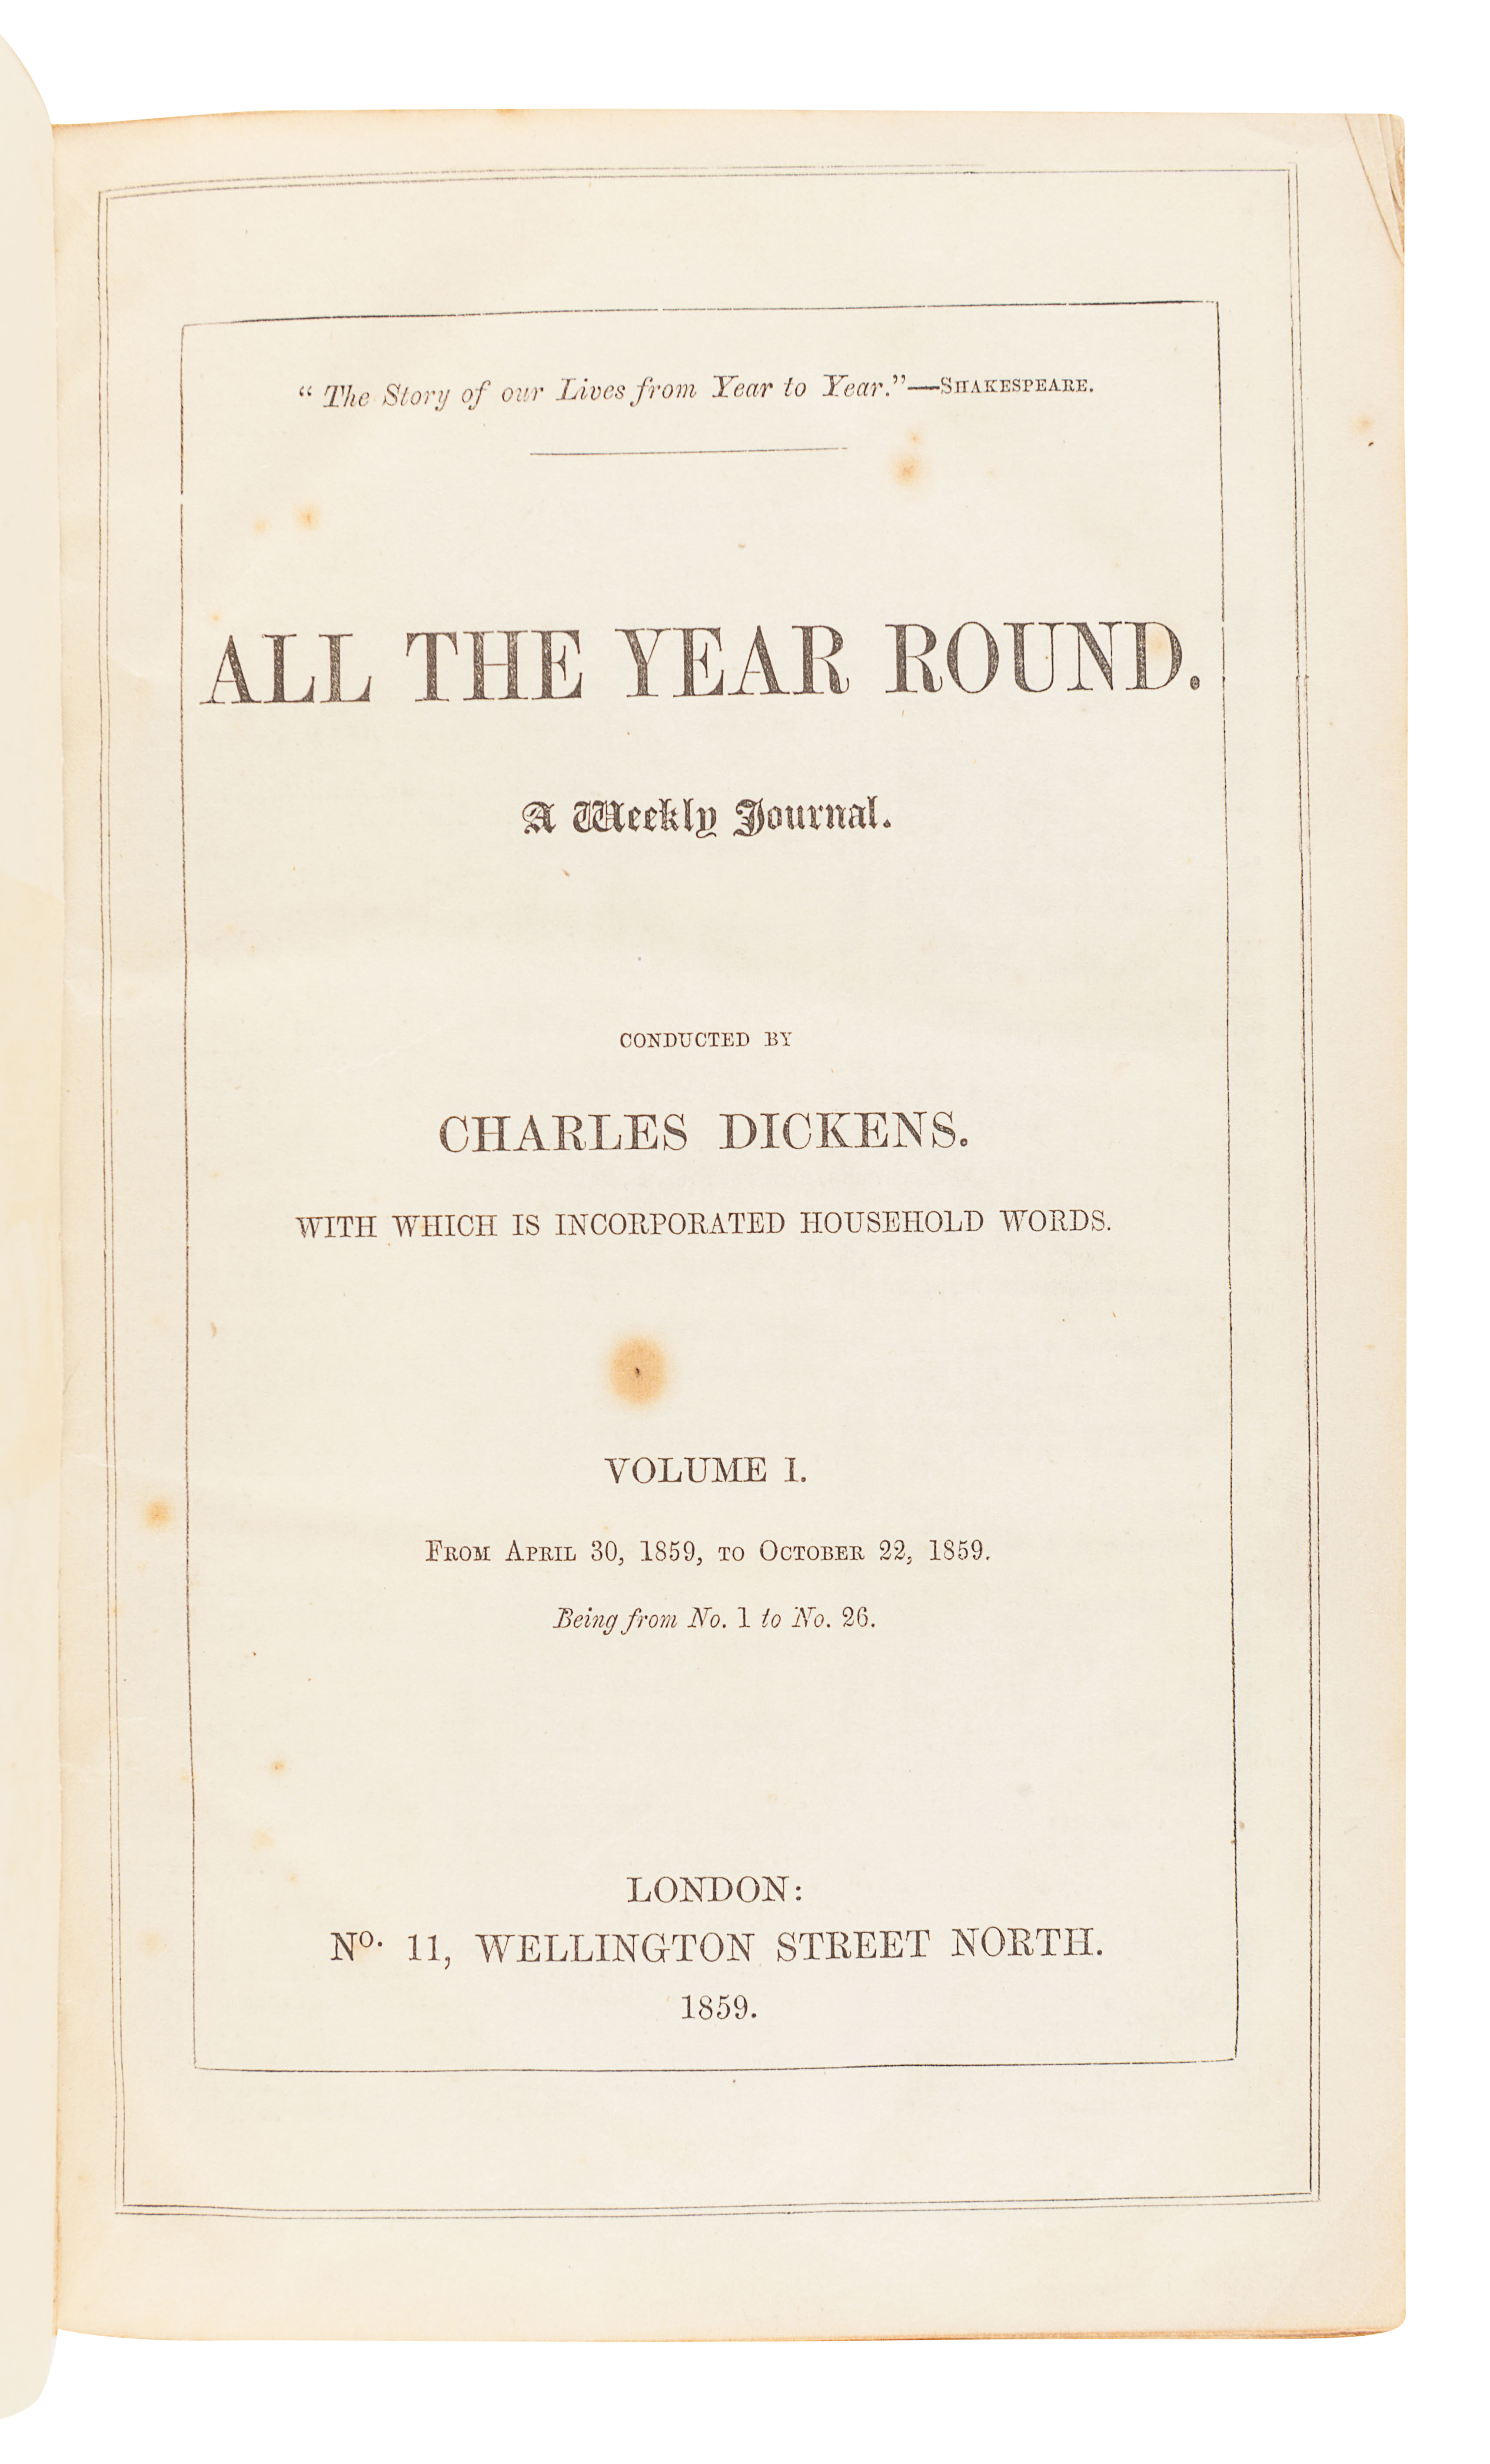 DICKENS, Charles (1812-1870), editor. All the Year Round. A Weekly Journal. London: C. Whiting for N